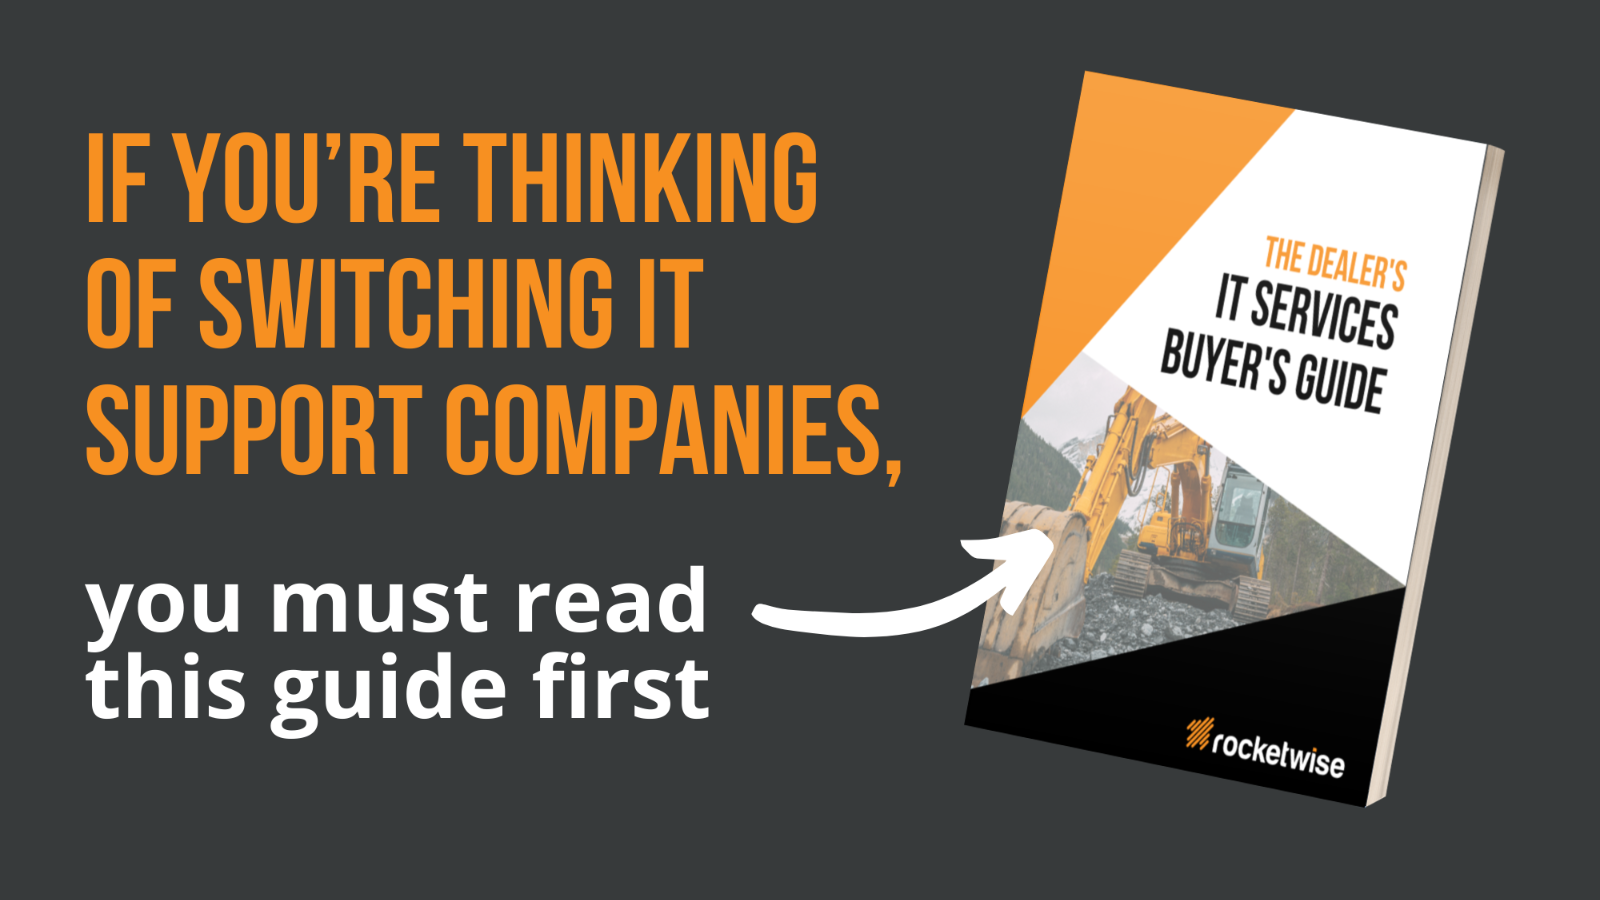 The Dealer's IT Services Buyer's Guide